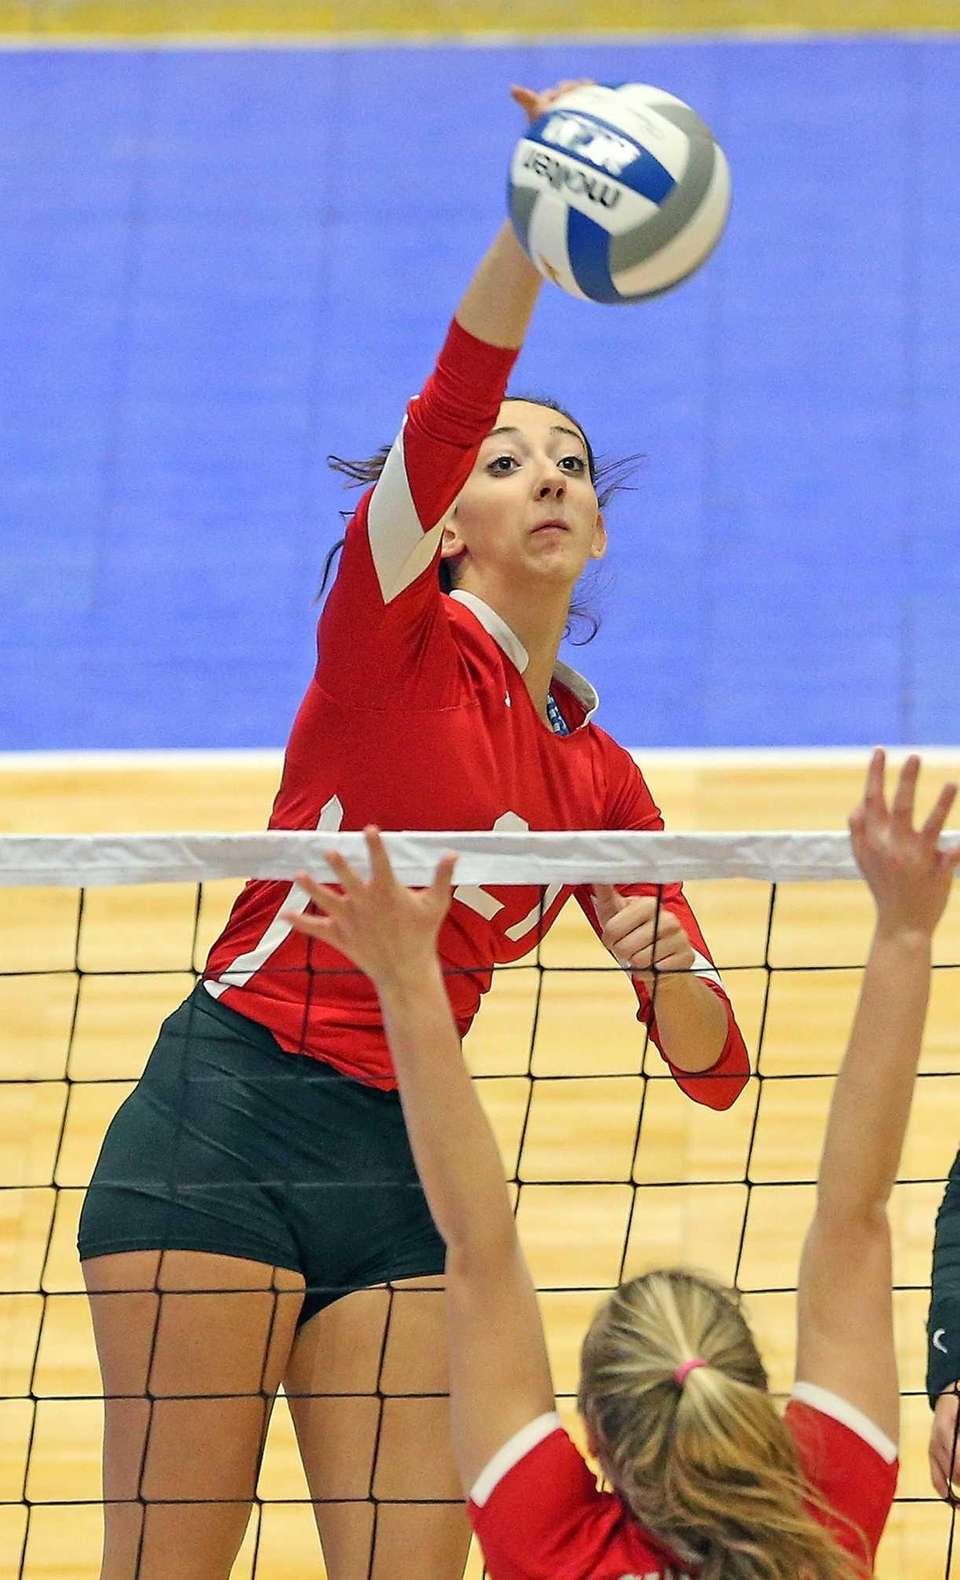 Connetquot's Cassandra Patsos smashes the overhead during the